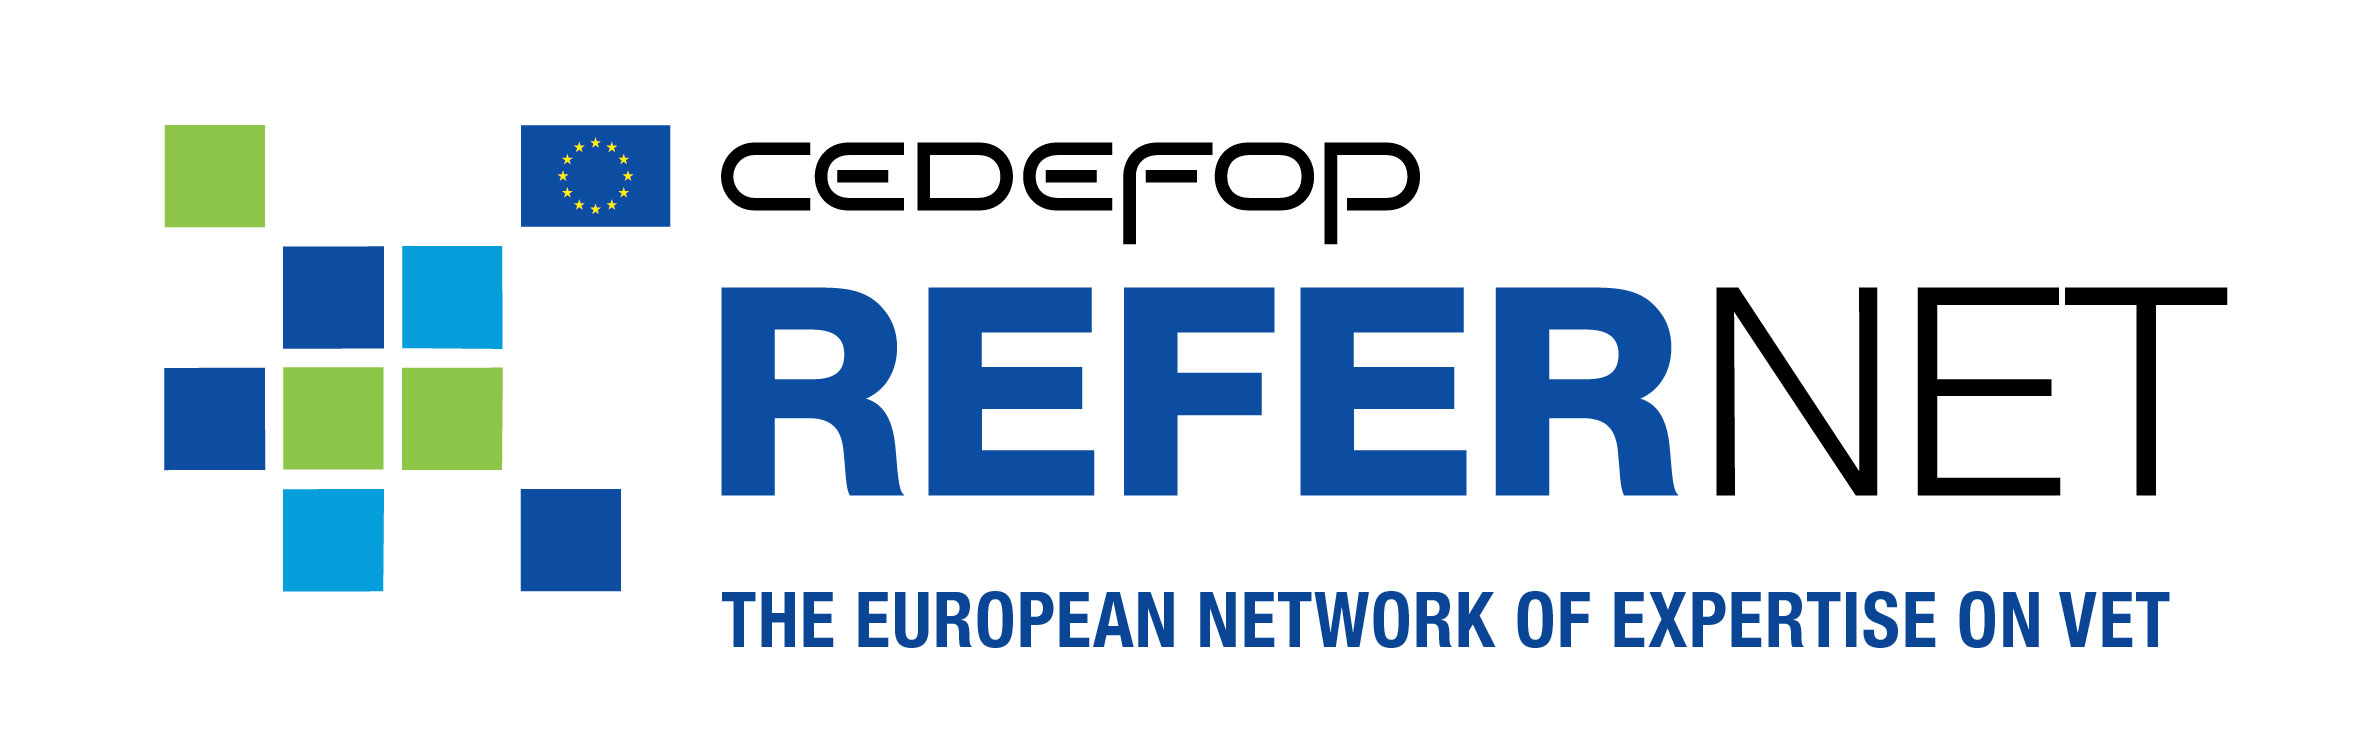 2017_refernet_logo_the_european_network_of_expertise_on_vet.jpg